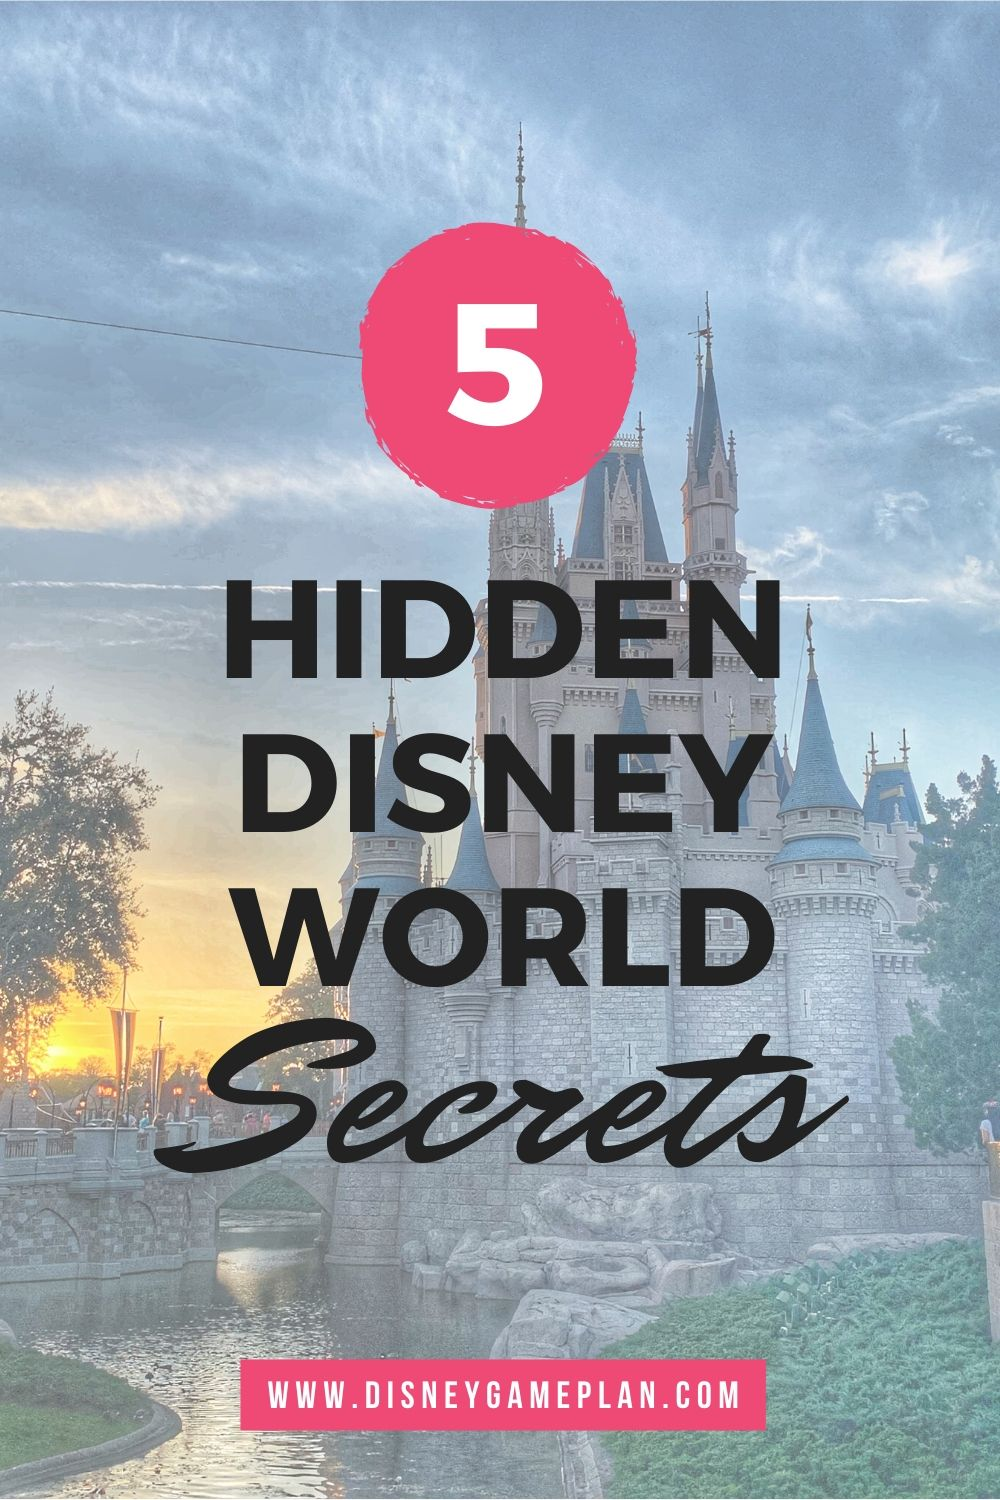 These hidden Disney World secrets give a fascinating insight into the minds of Disney Imagineers and other creatives that make Disney magic every day. Read more about these cool Disney tips. #hiddenmickeys #disneytips #disneysecrets